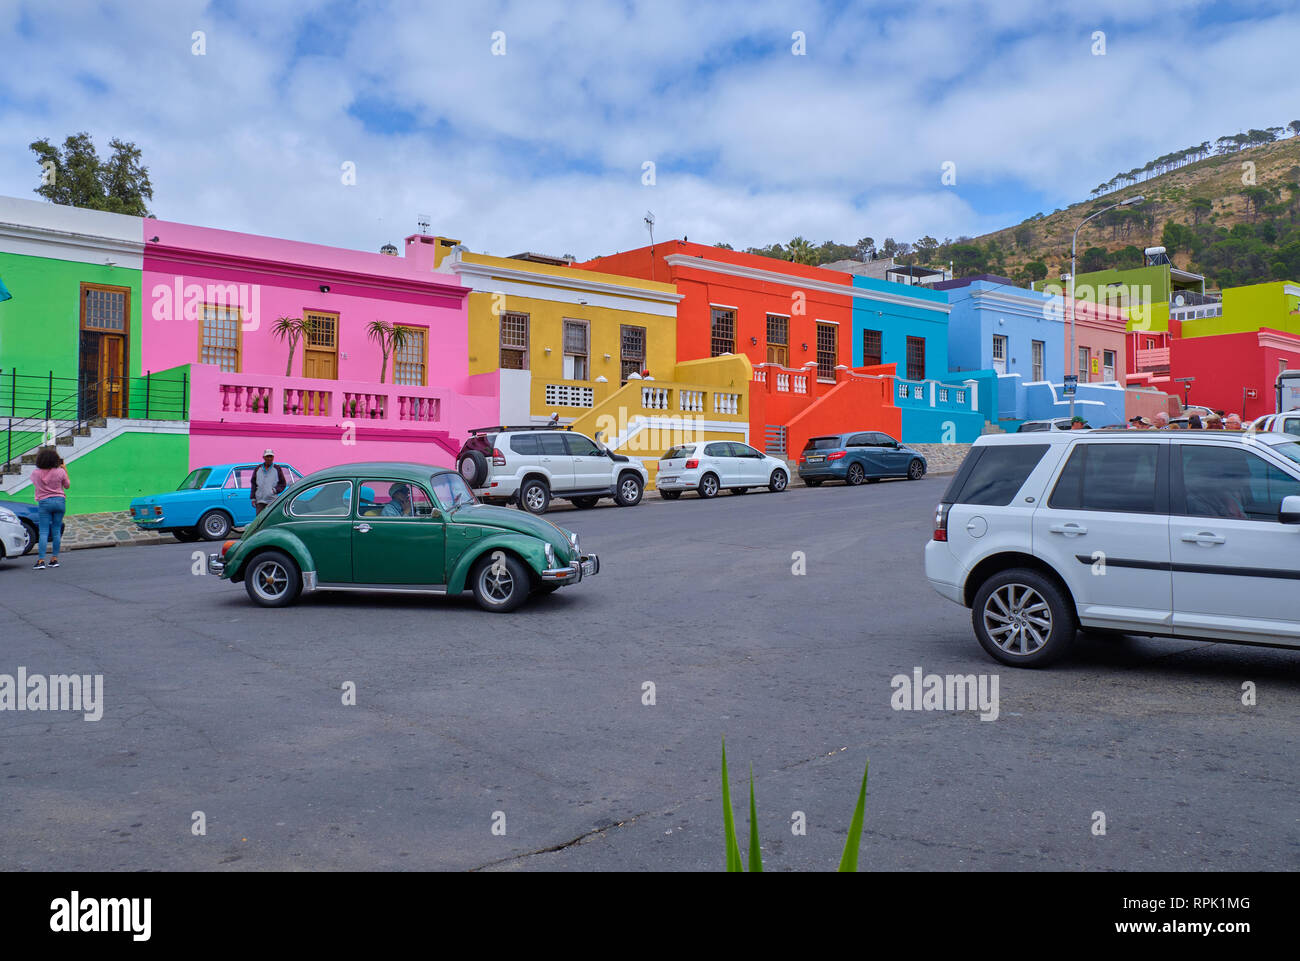 car-traffic-on-main-street-of-colourful-facades-of-the-houses-in-bo-kaap-cape-town-featuring-an-original-green-beetle-RPK1MG.jpg